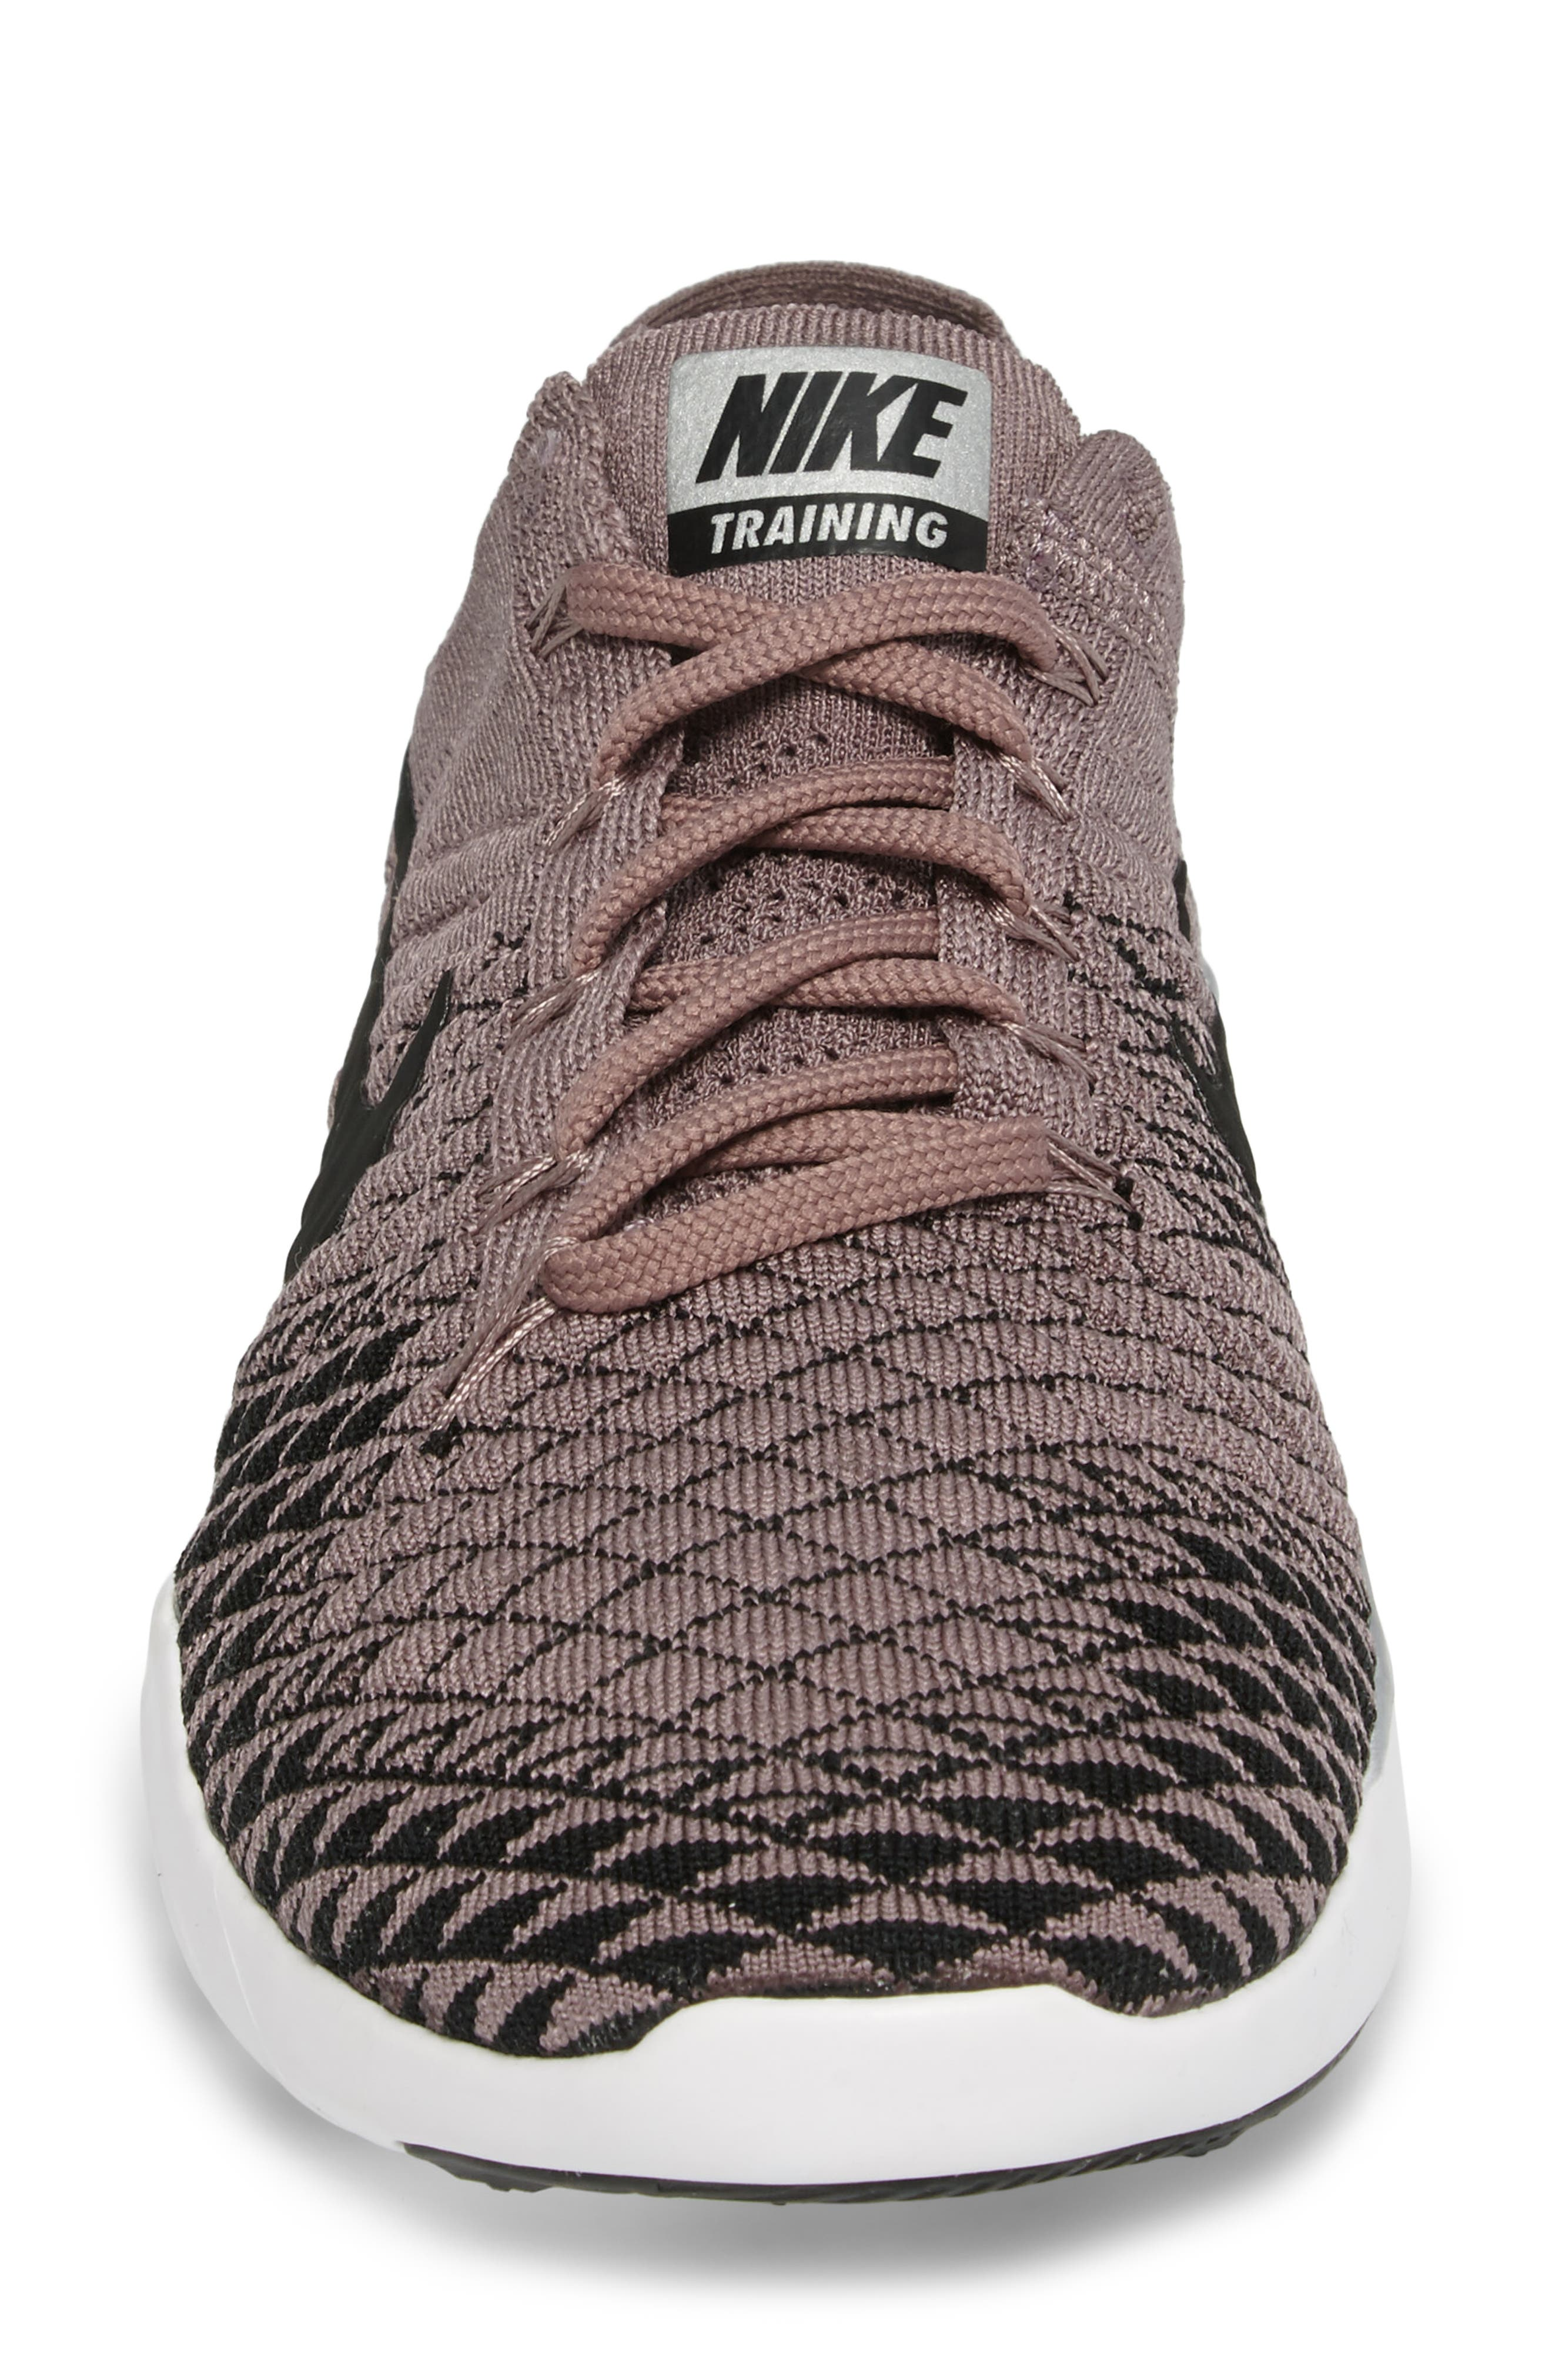 Free Focus Flyknit 2 Bionic Training Shoe,                             Alternate thumbnail 5, color,                             Taupe Grey/ Black/ Chrome